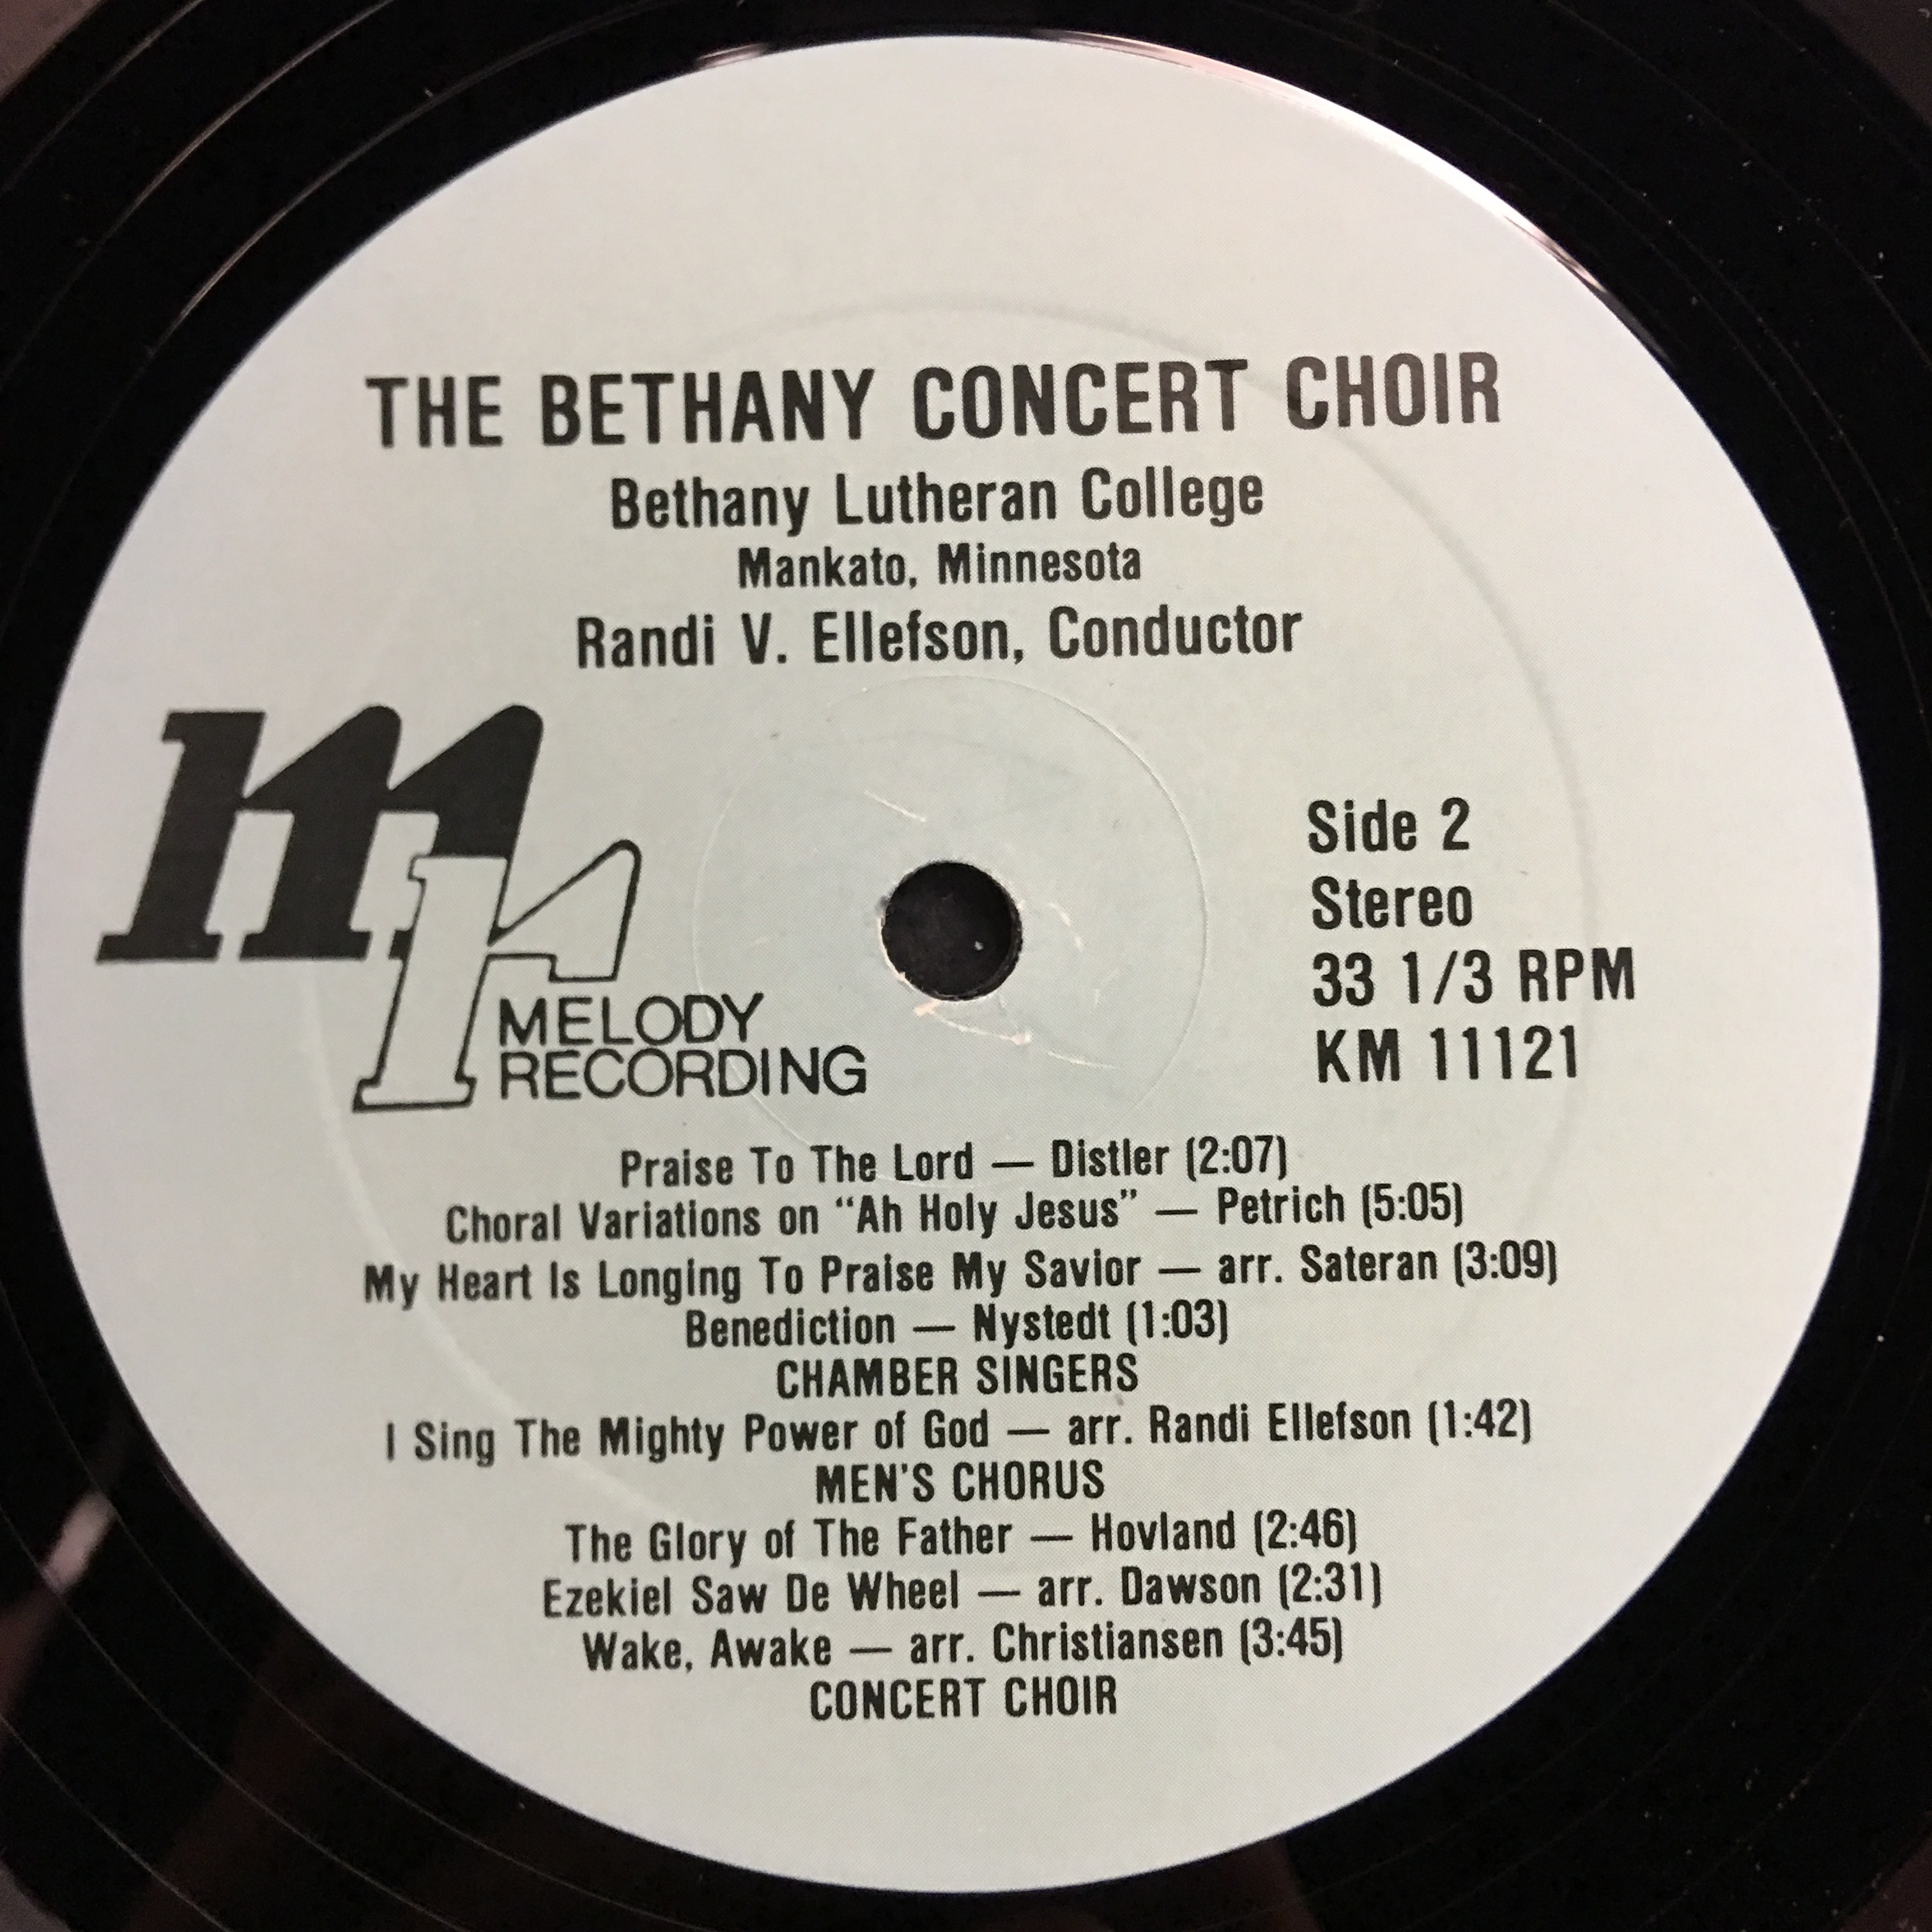 Bethany Lutheran College Choir 1983 Vinyl 1 Side 2